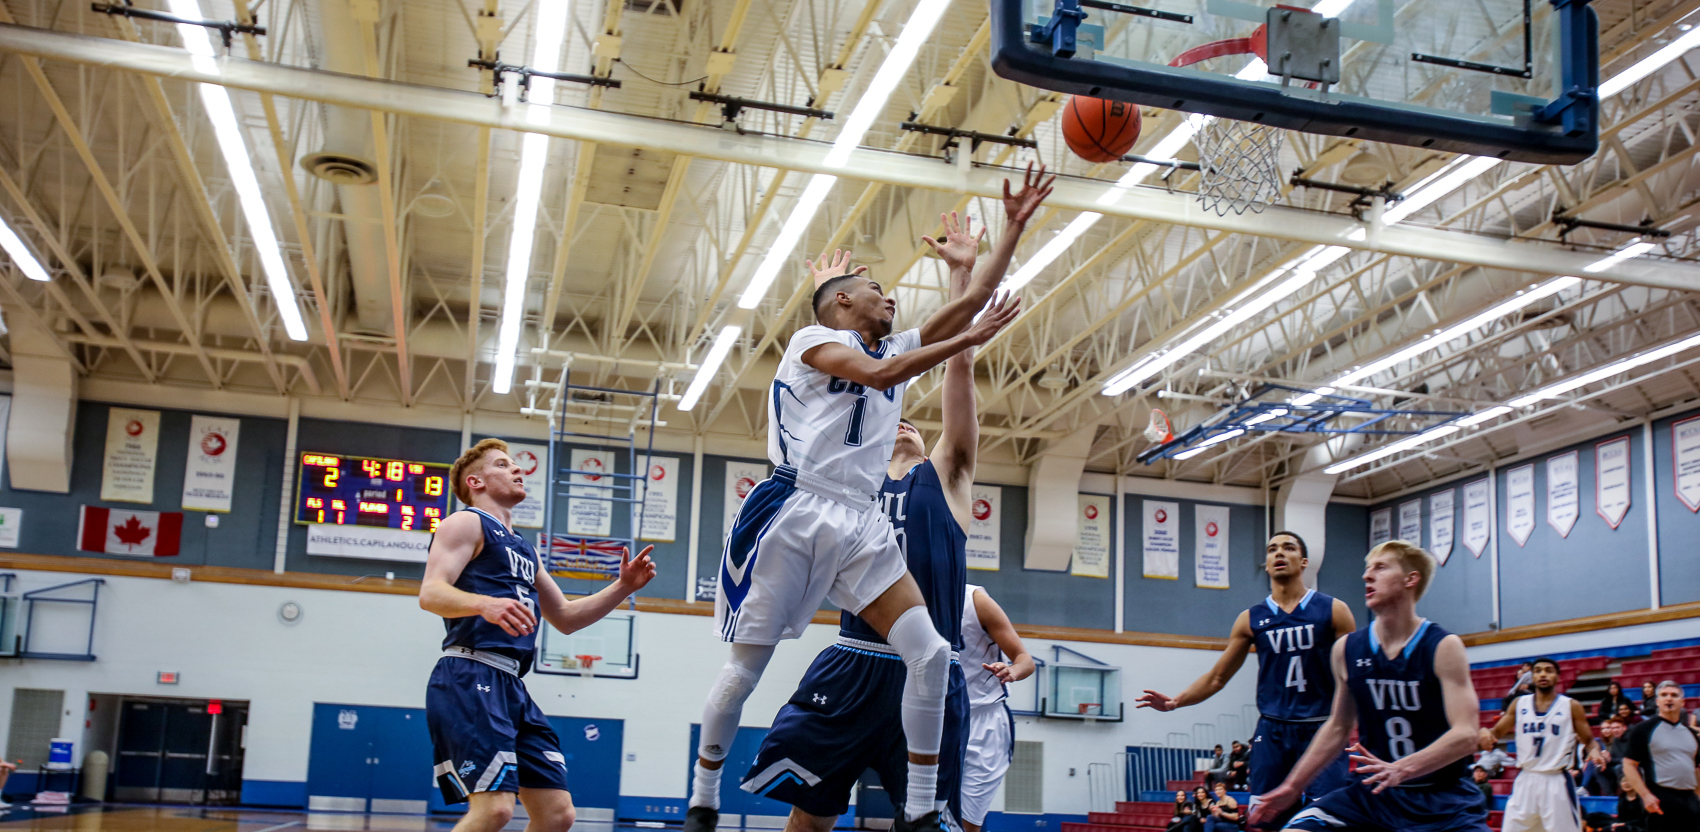 Point guard Brenden Bailey drives hard to the hoop against VIU. Photo Paul Yates / Vancouver Sports Pictures